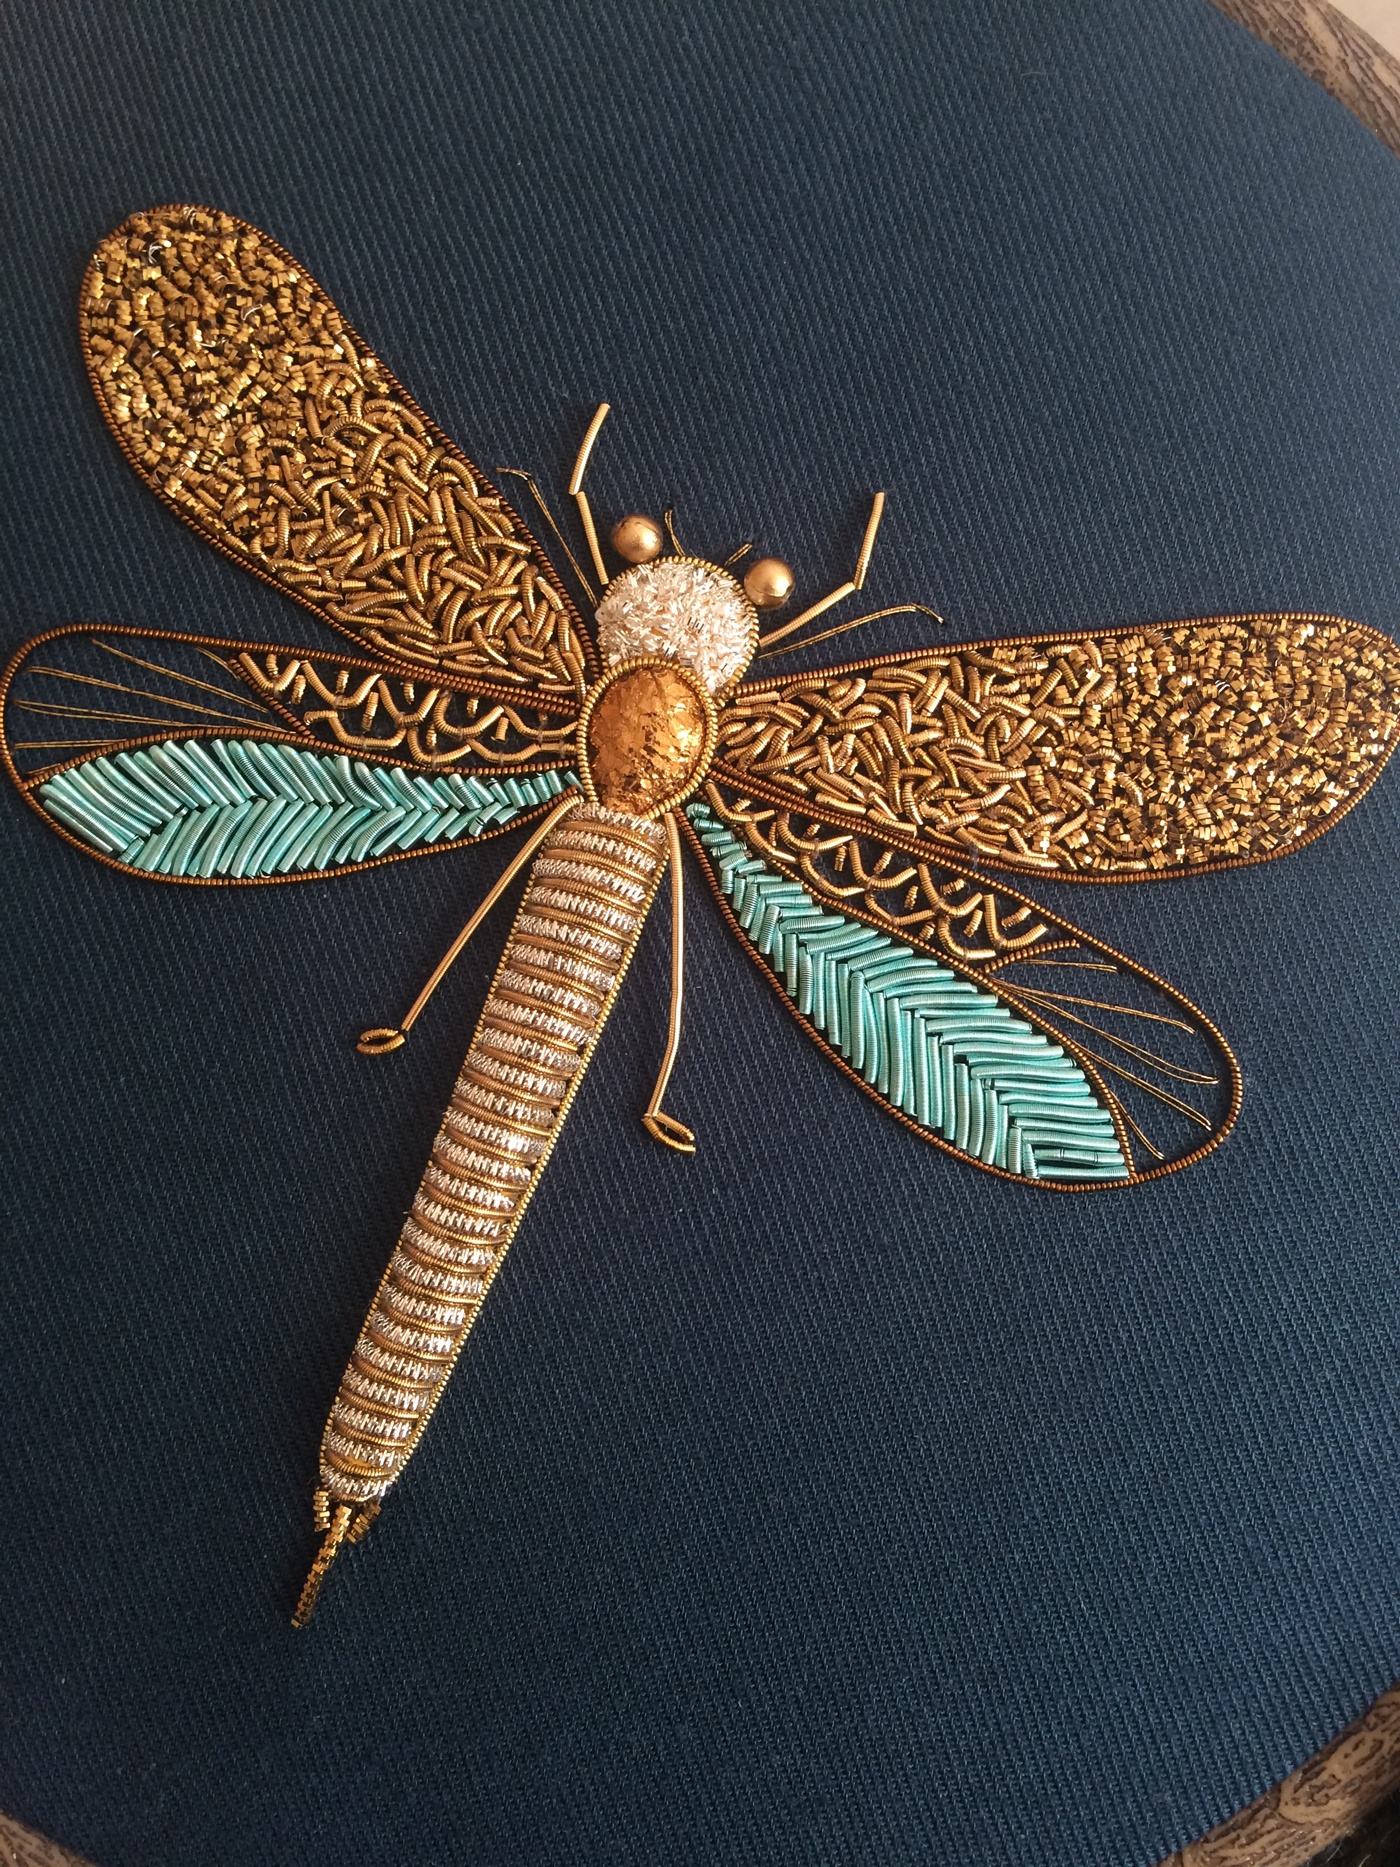 Shimmering Metallic Embroideries Of Dragonflies And Other